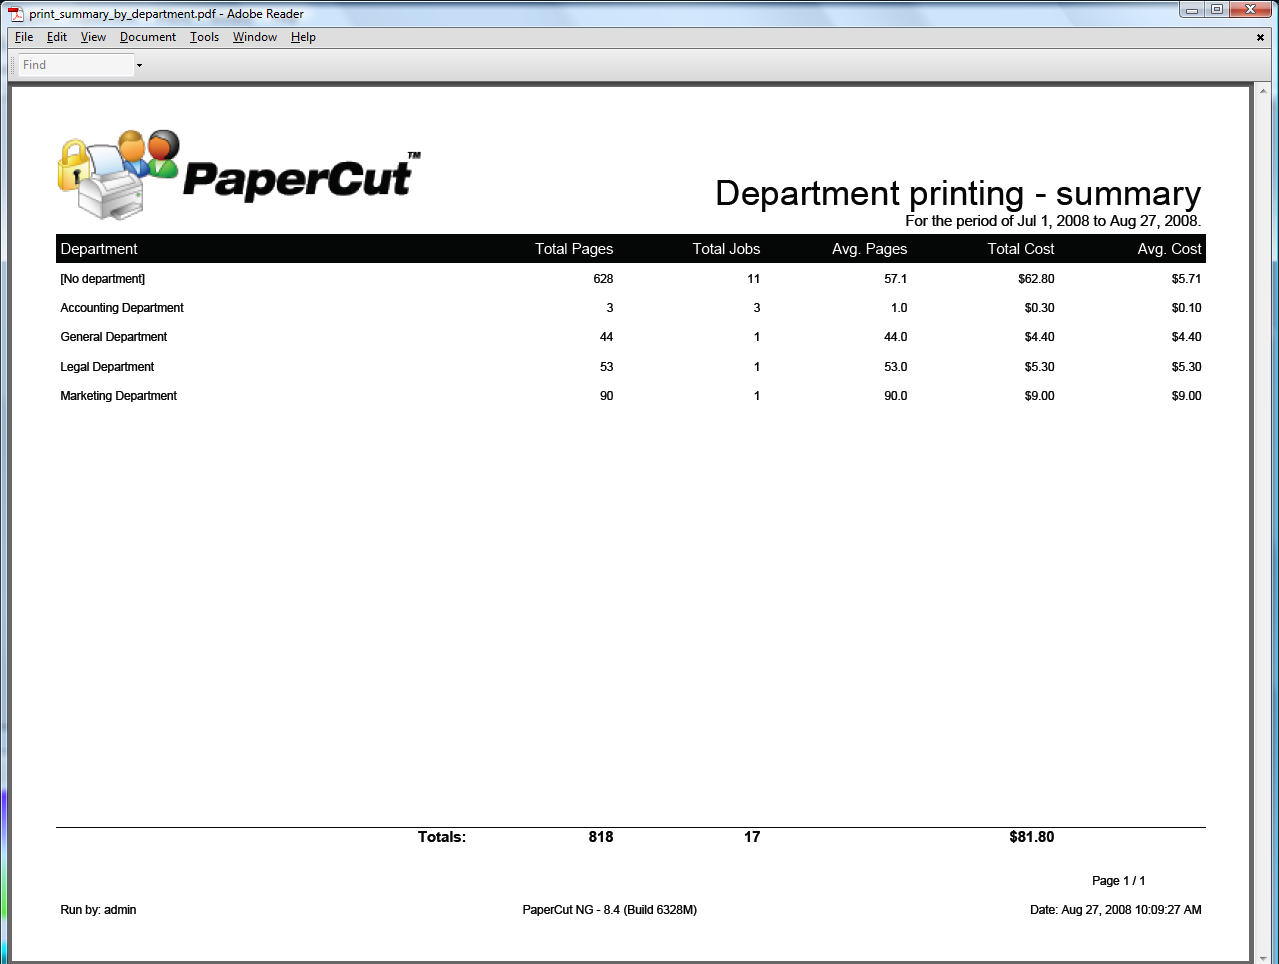 Report: Department Printing - Summary